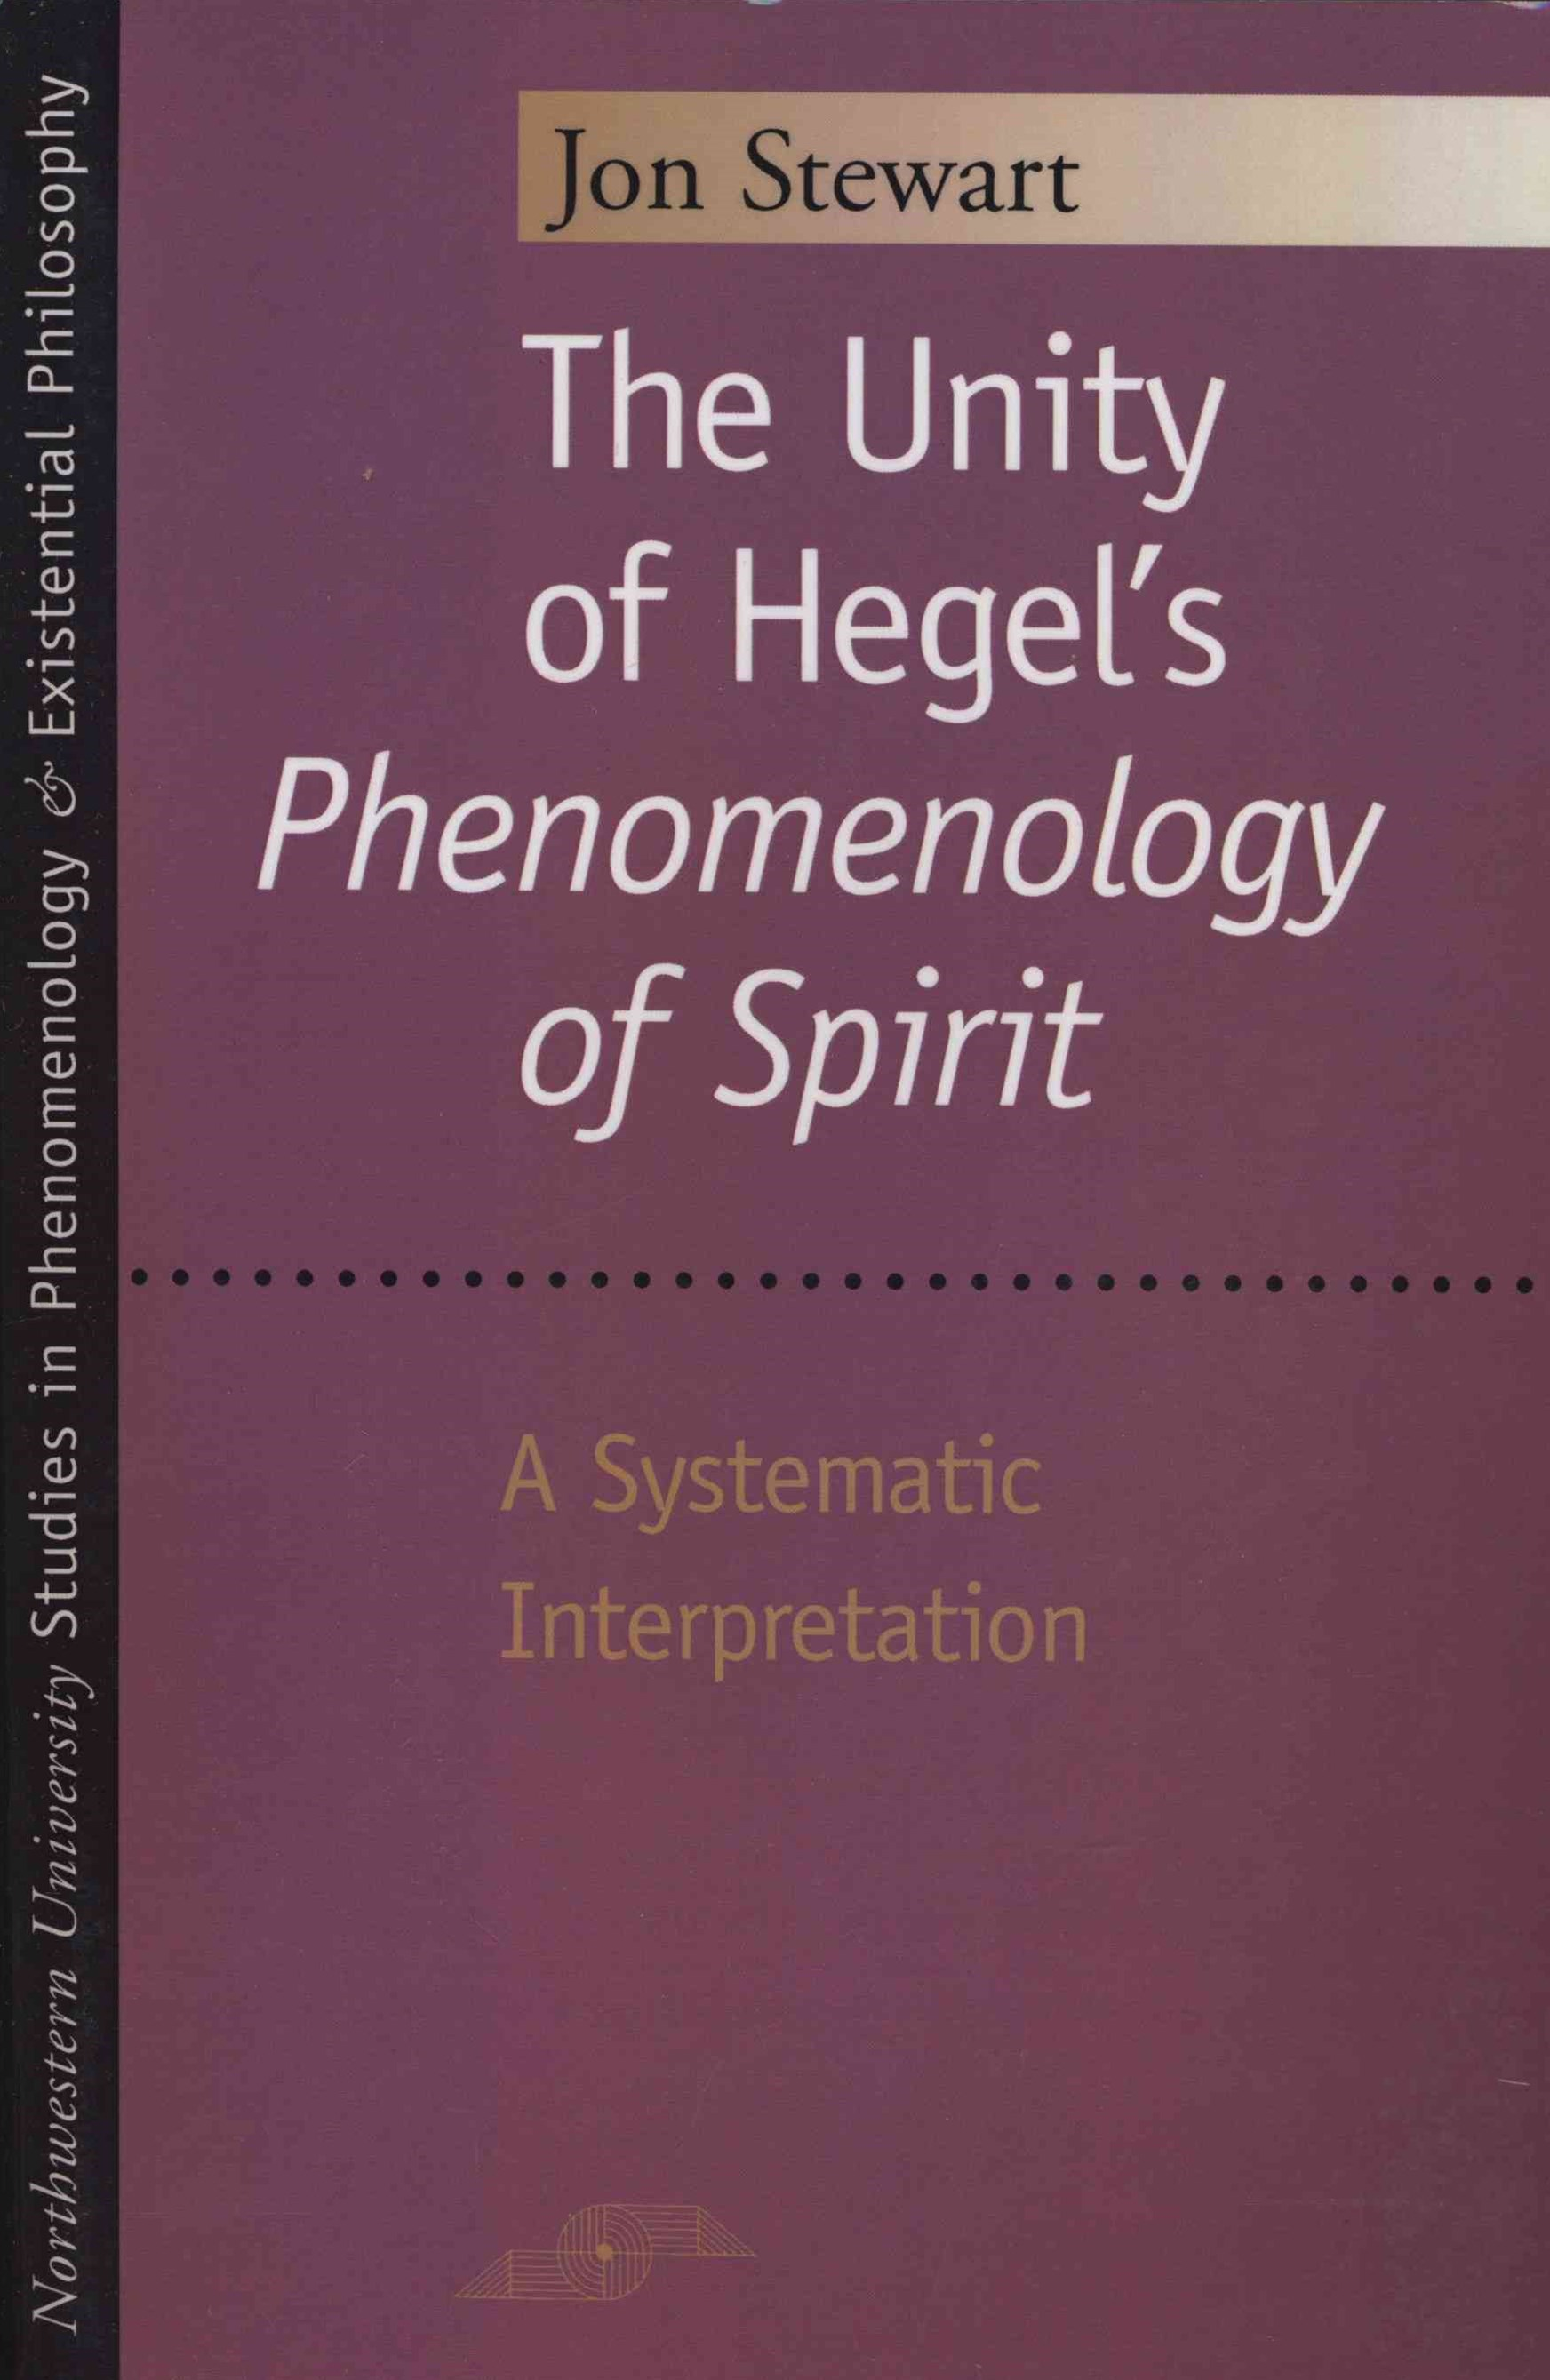 Unity of Hegel's &quote;Phenomenology of Spirit&quote;